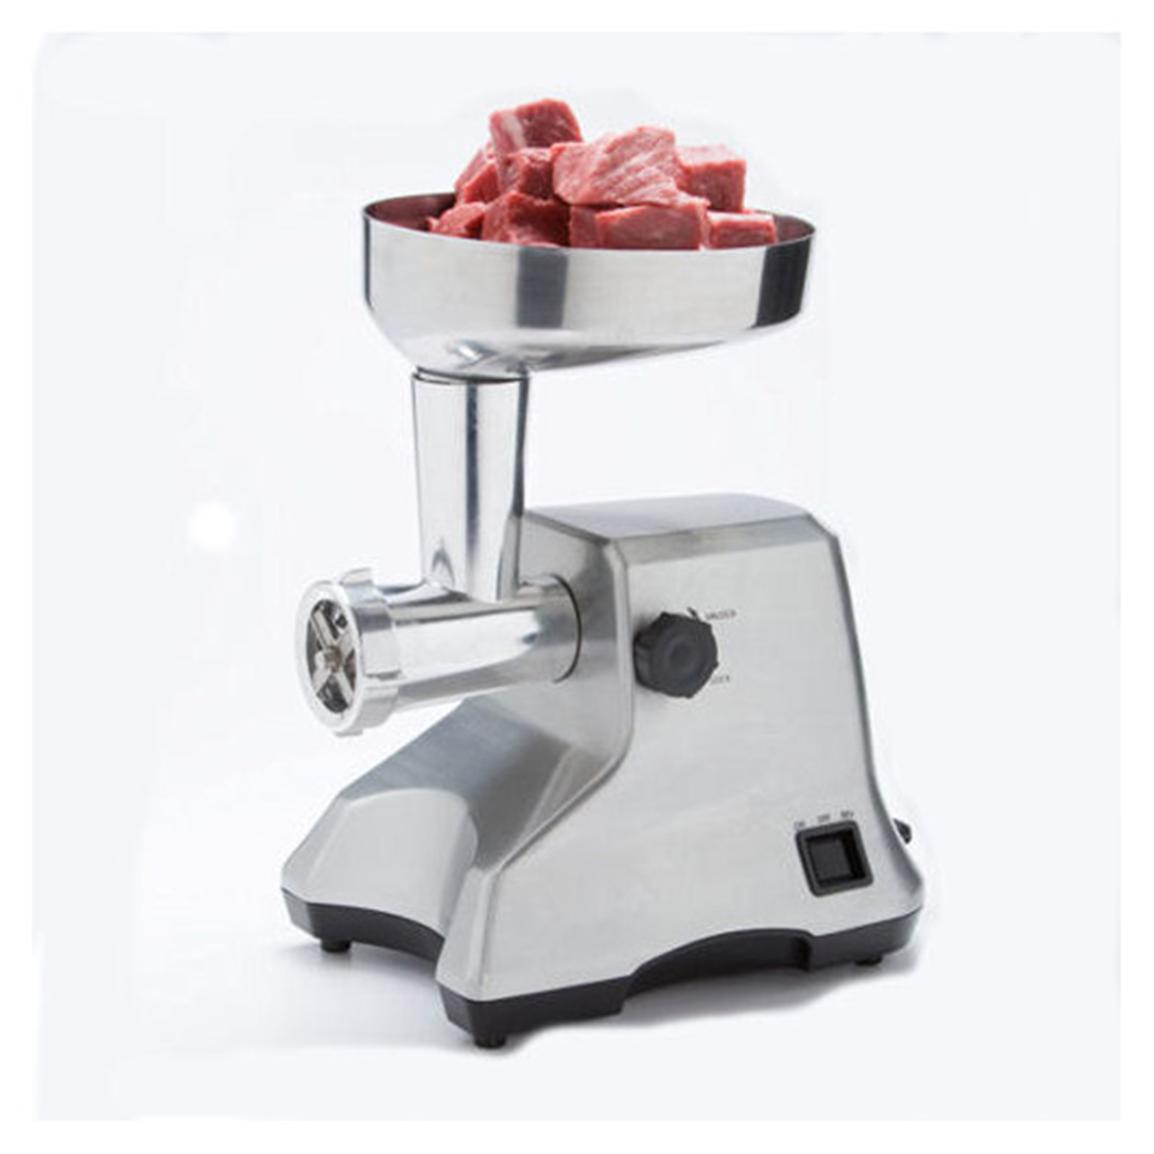 Open Country® 380-watt Die-cast Food Grinder